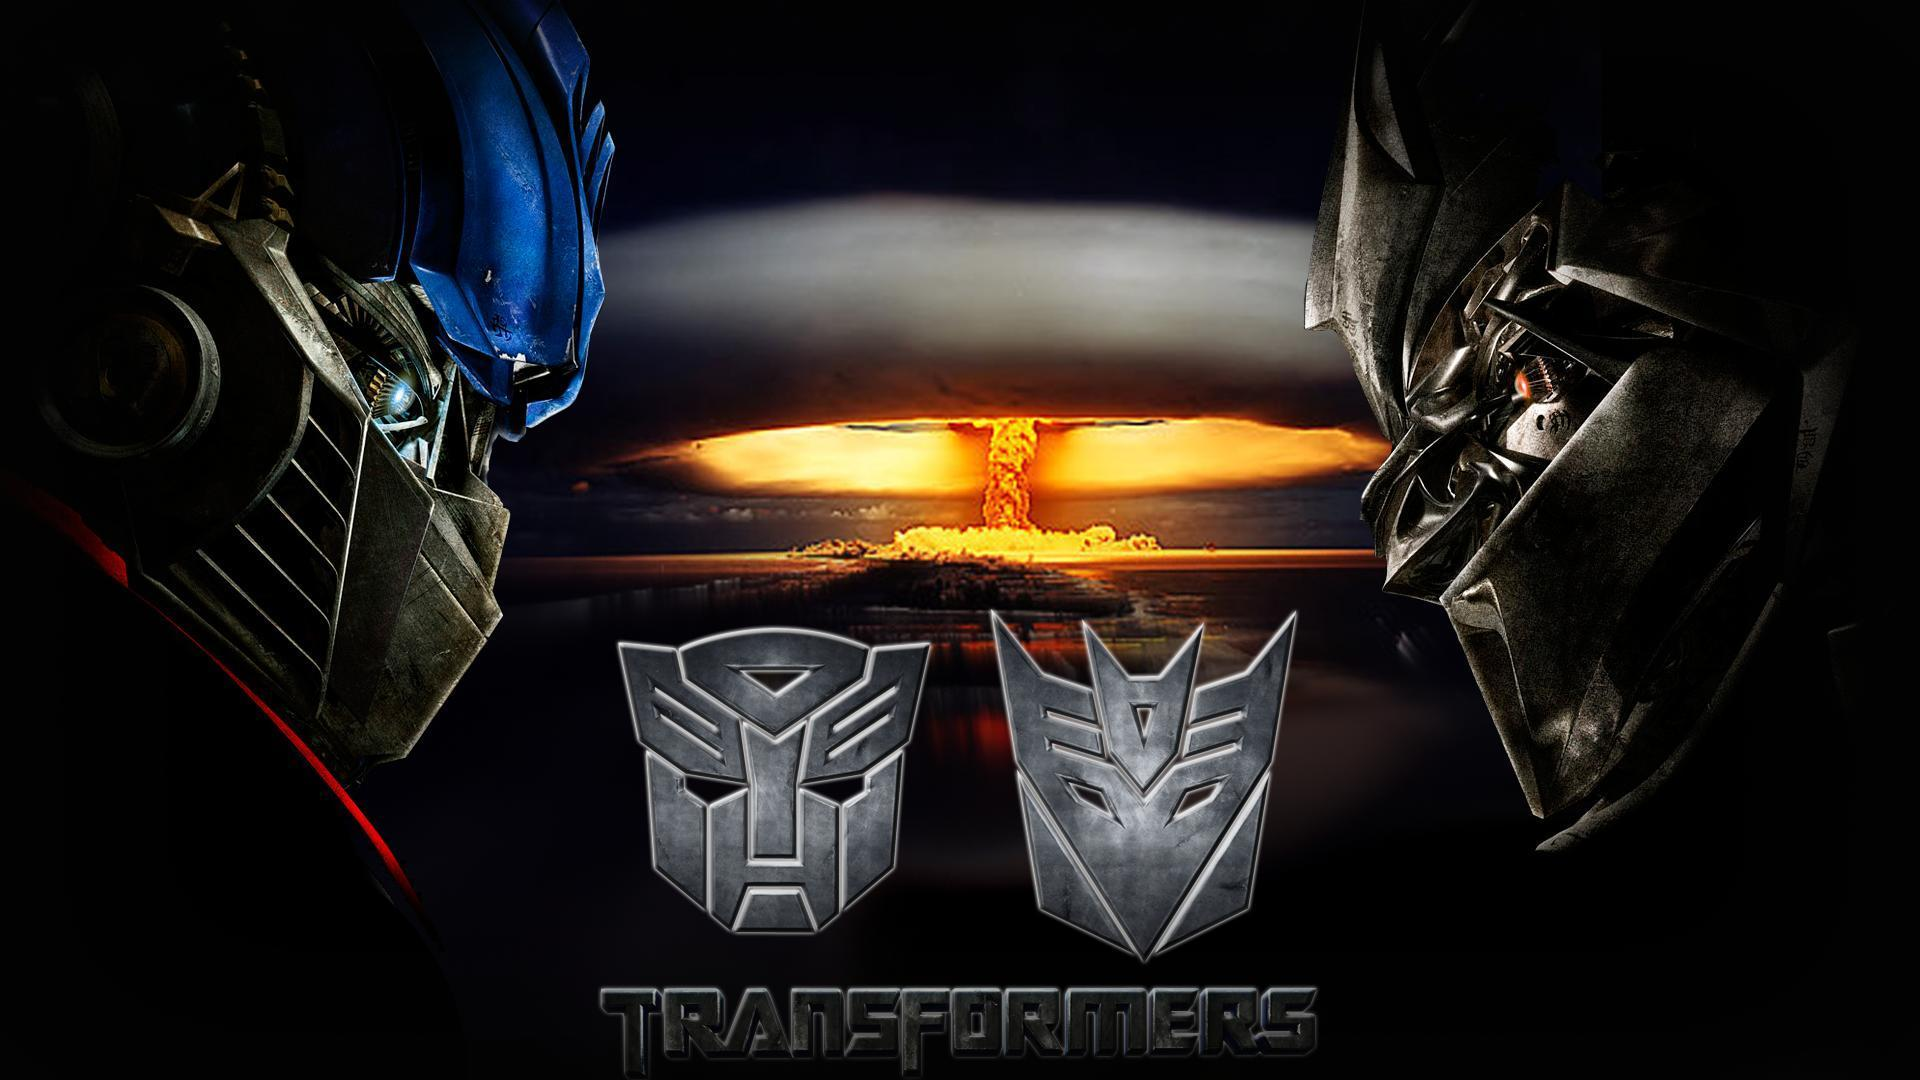 Transformers HD Wallpapers - Wallpaper Cave